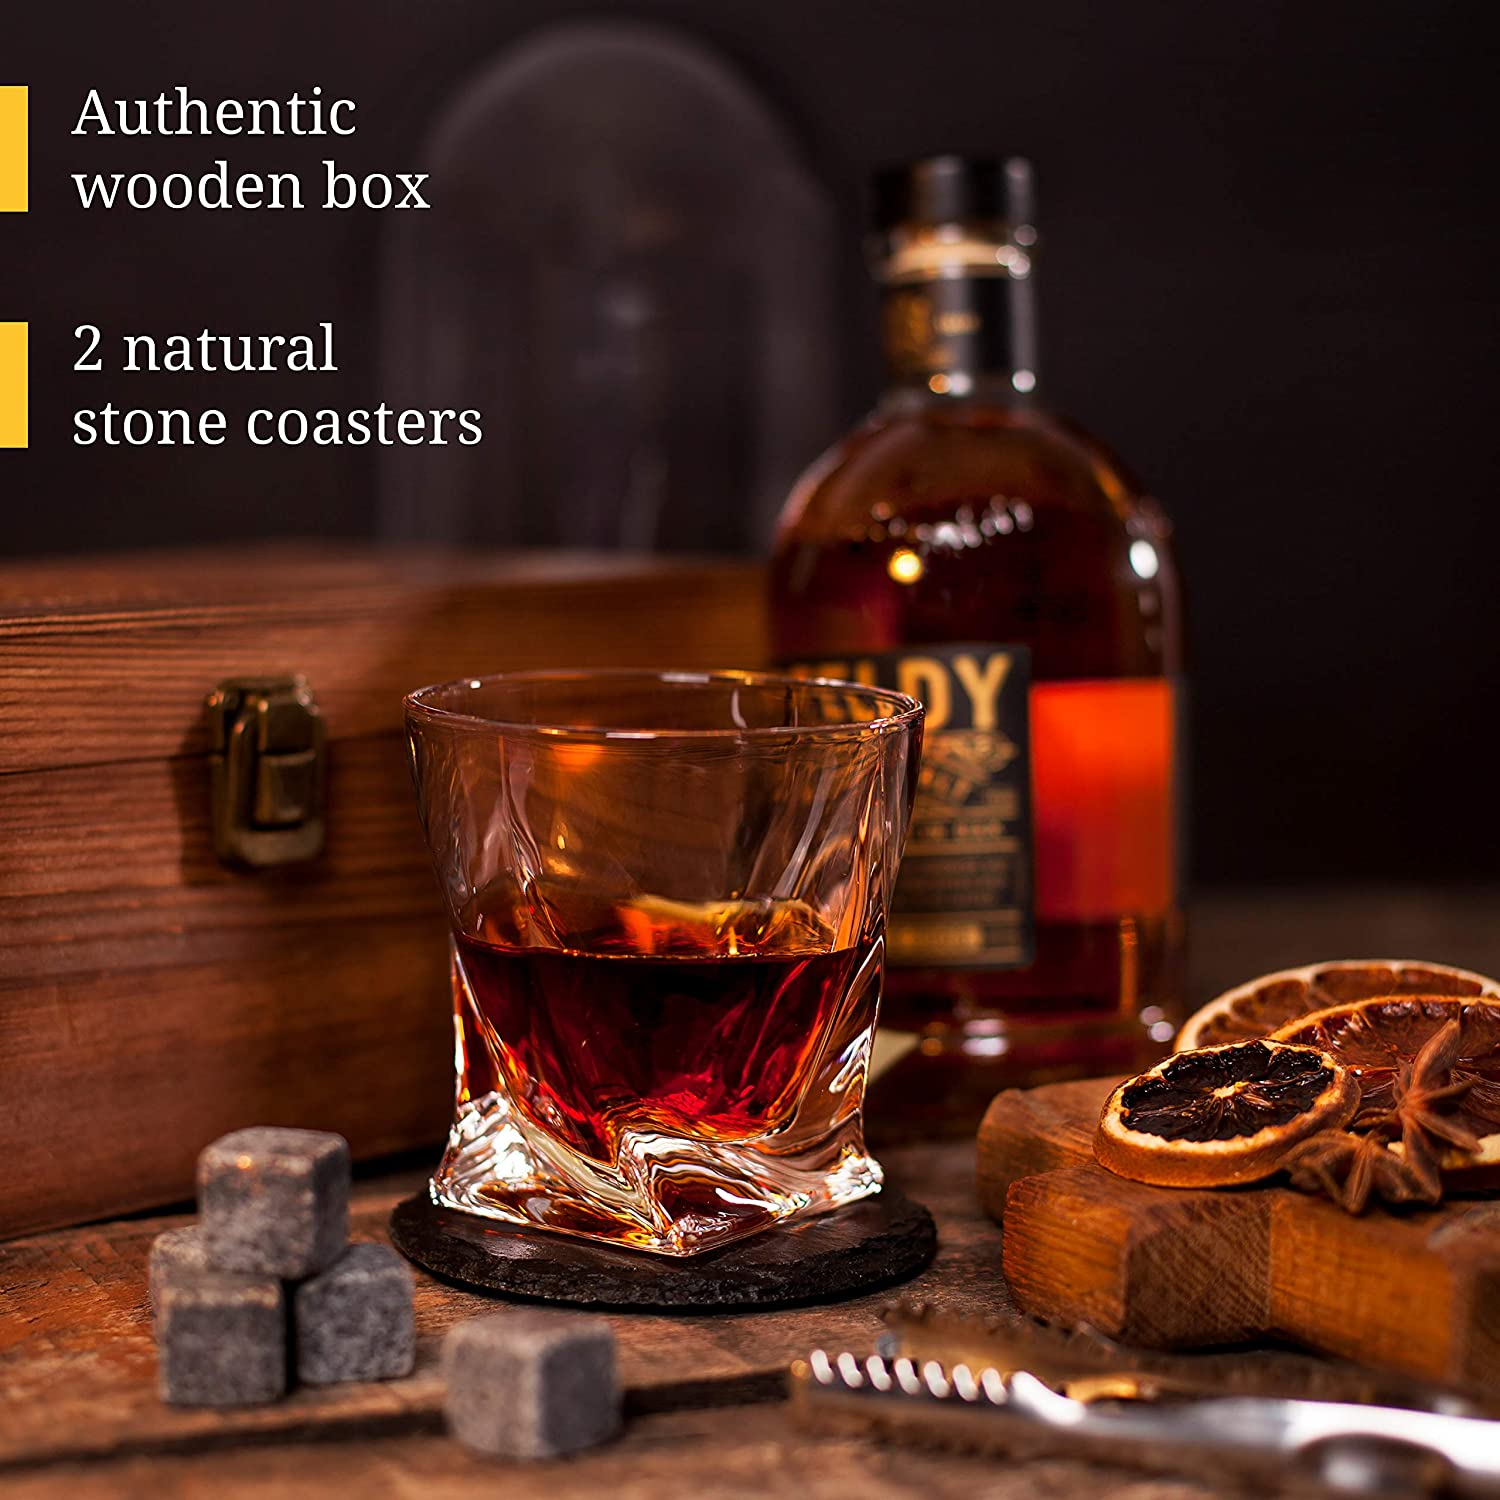 Chilling Stones /& Bar Glasses Whiskey Glassware in Wooden Gift Box Twist Scotch Rocks Tongs Coasters Bourbon Whiskey Stones Gift Set Whiskey Glass Set of 2 Drinking Glasses for Men /& Woman